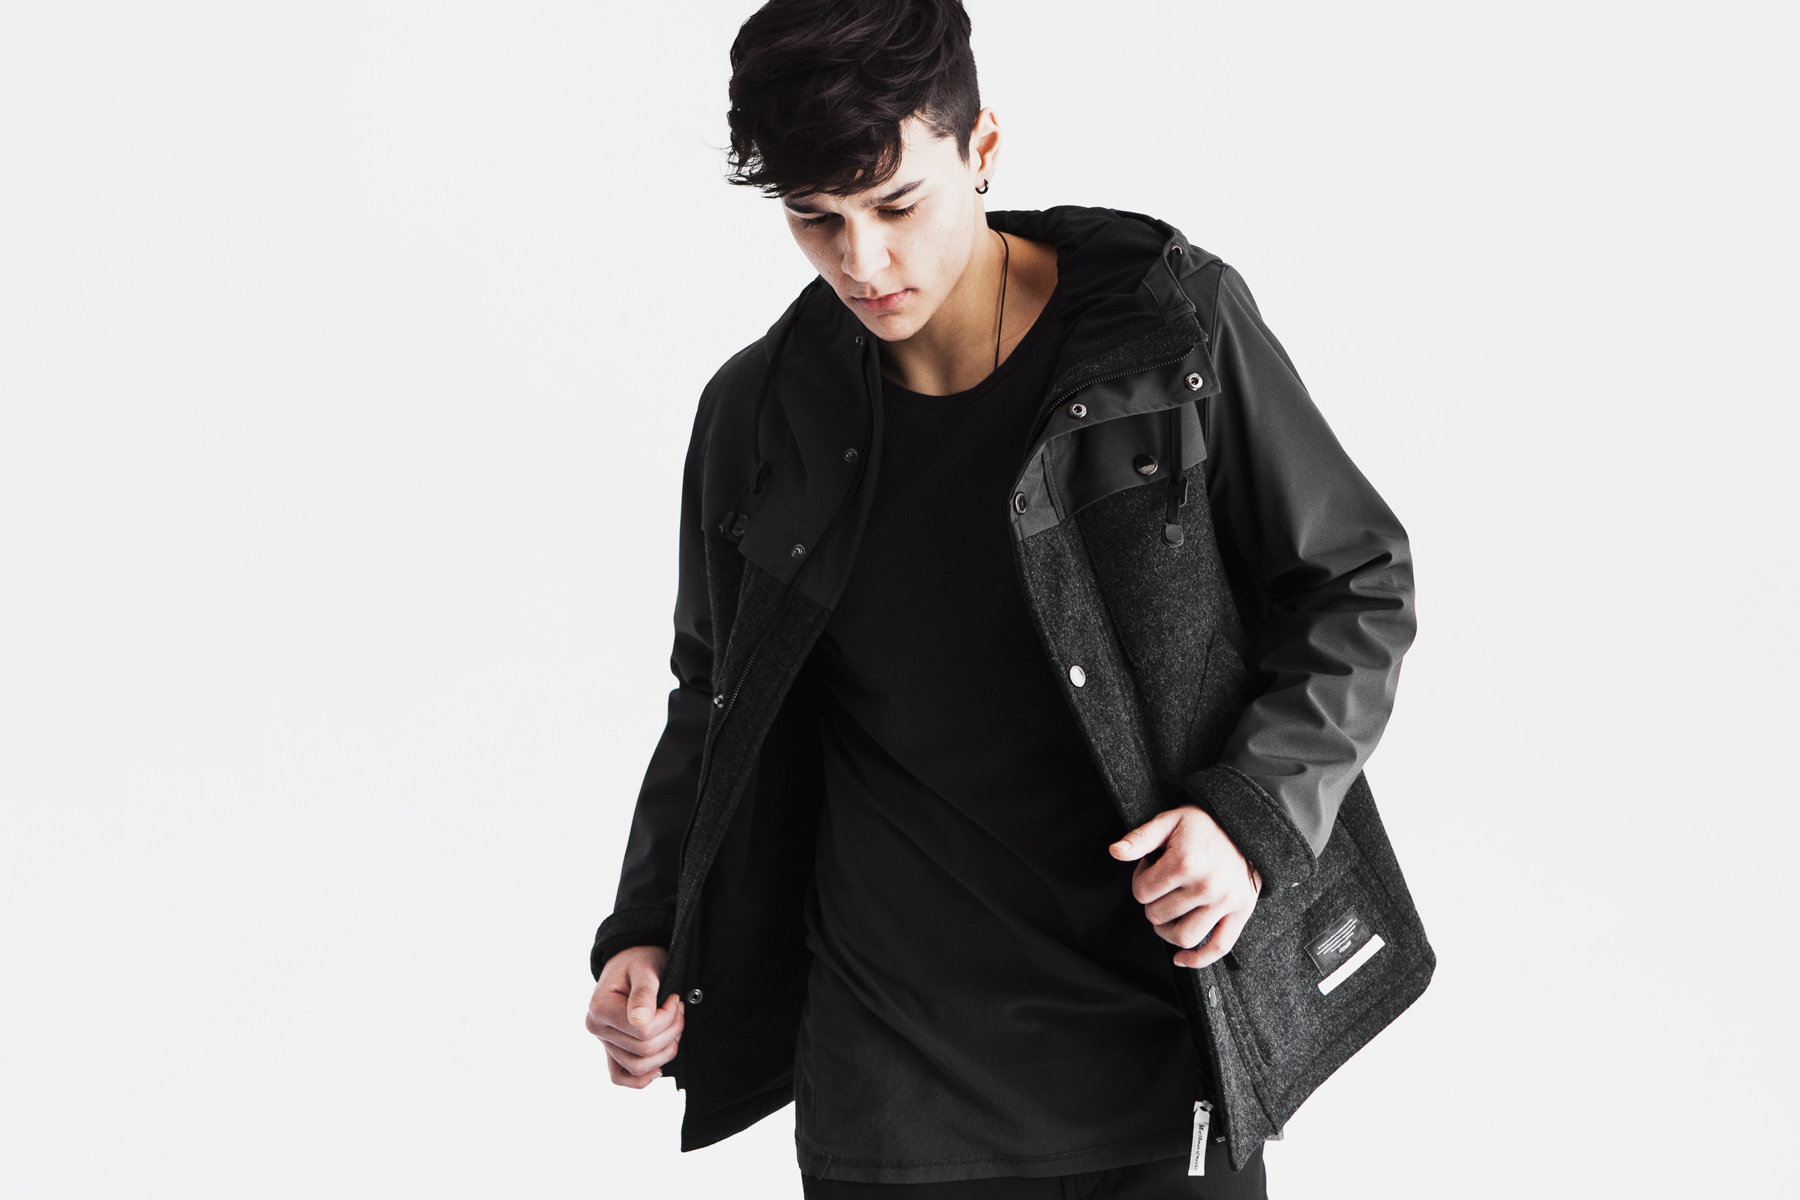 Man of Moods 2015 Fall/Winter Collection